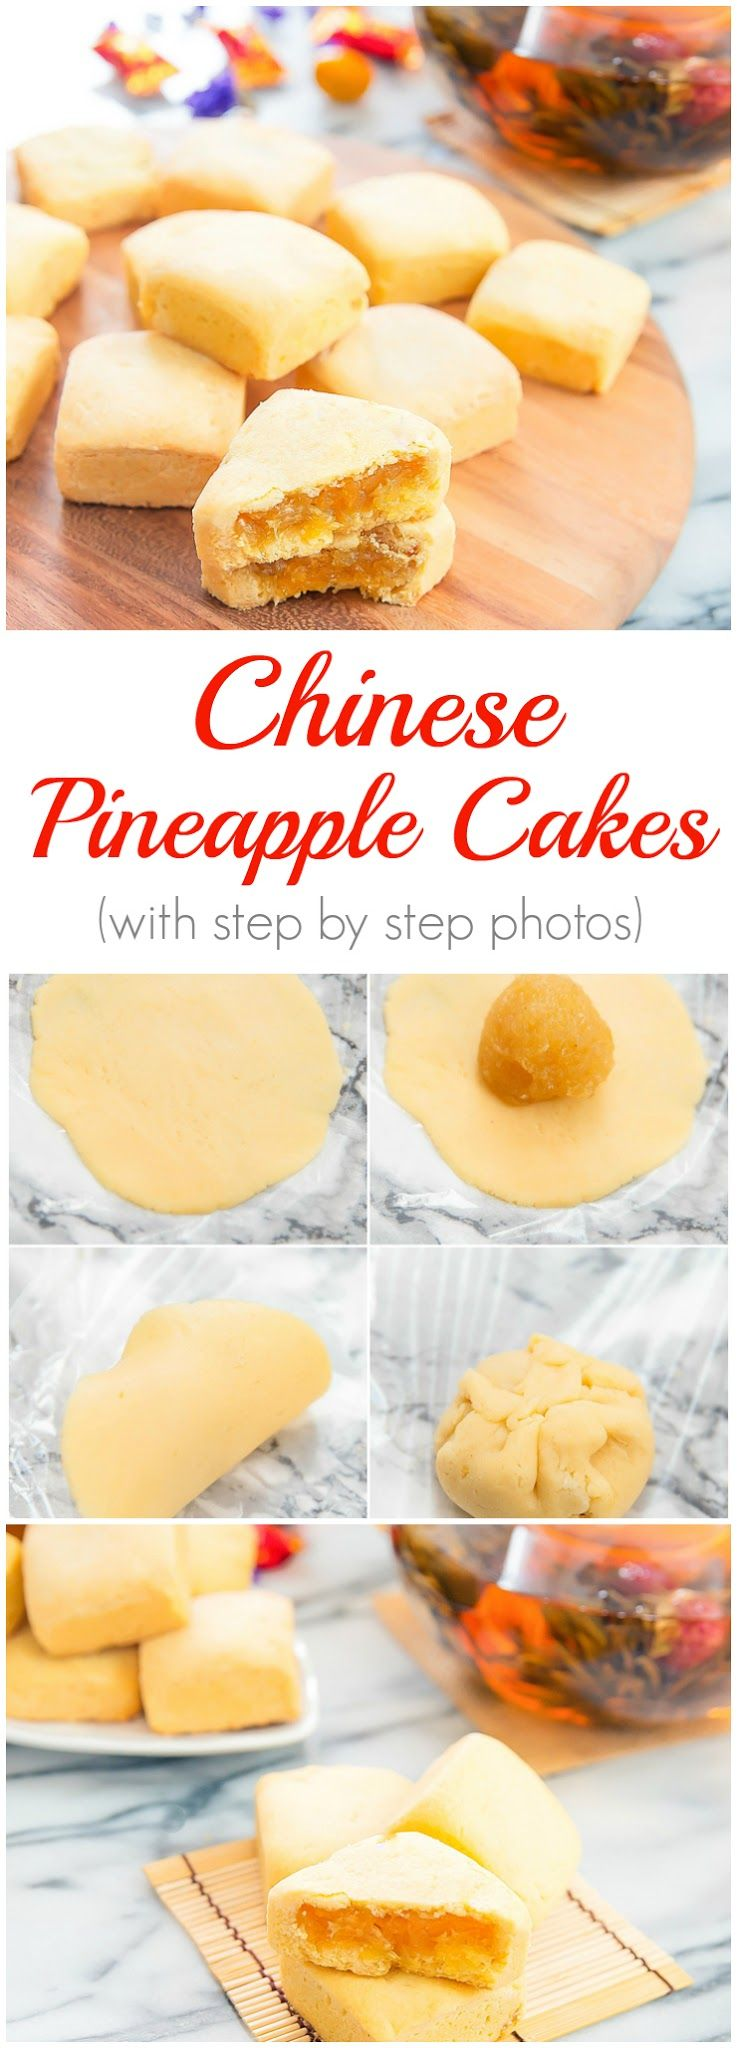 Taiwanese Chinese Pineapple Cakes Recipe Asian Desserts Food Chinese Dessert